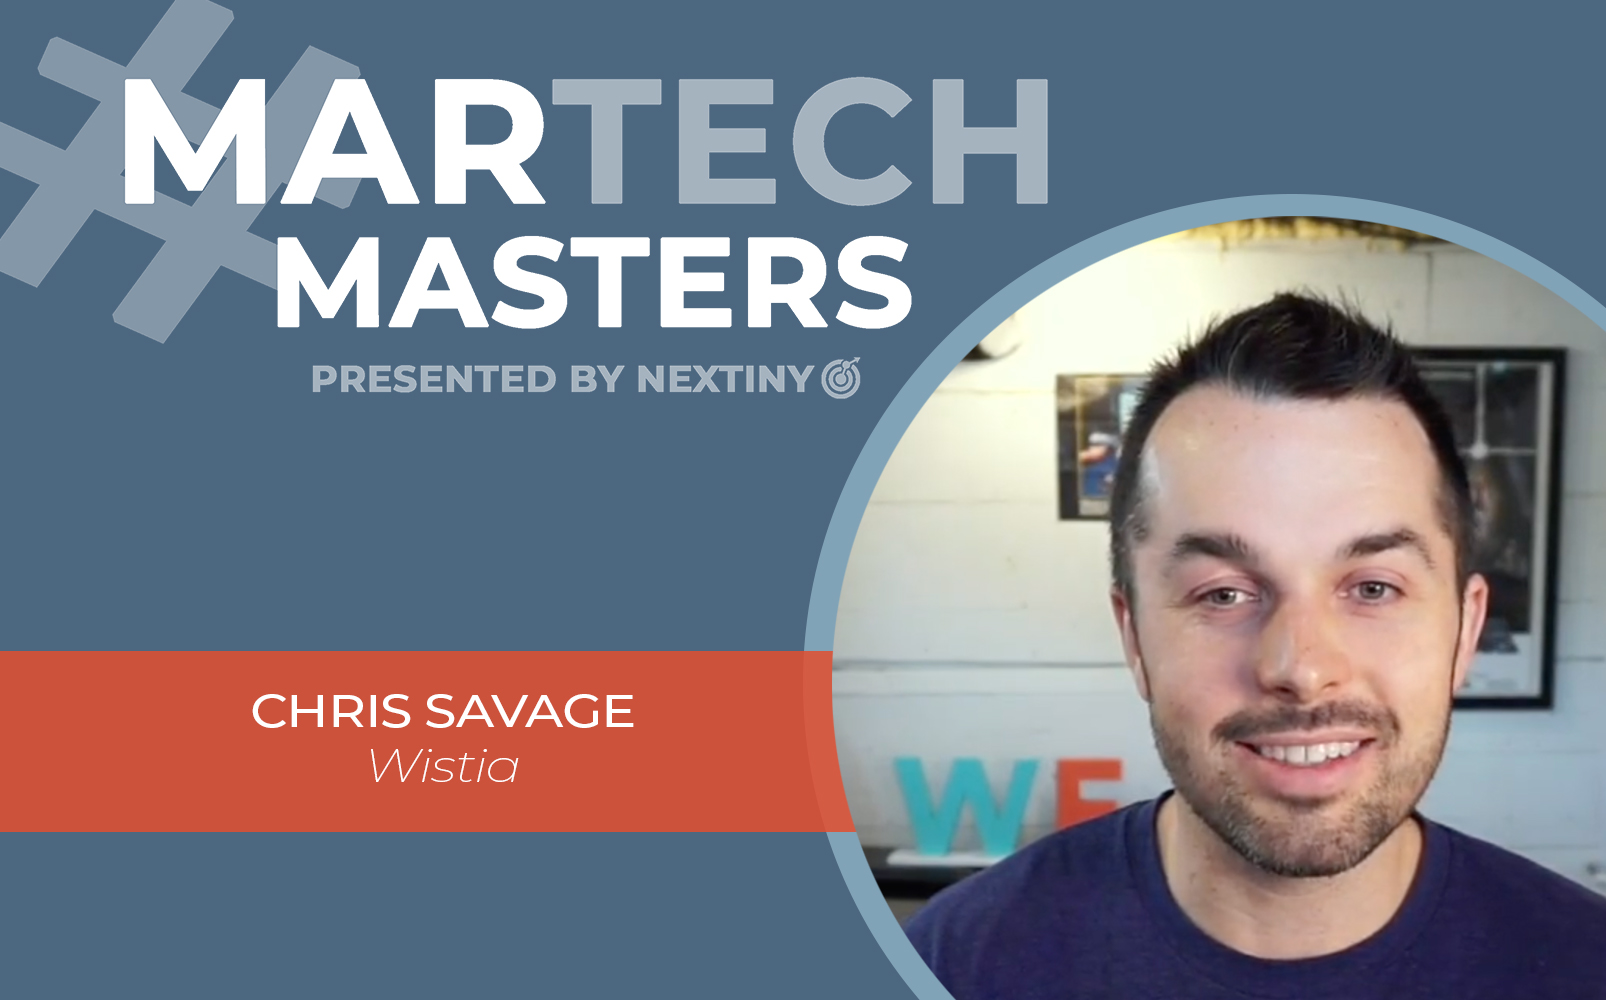 chris savage martech masters wistia